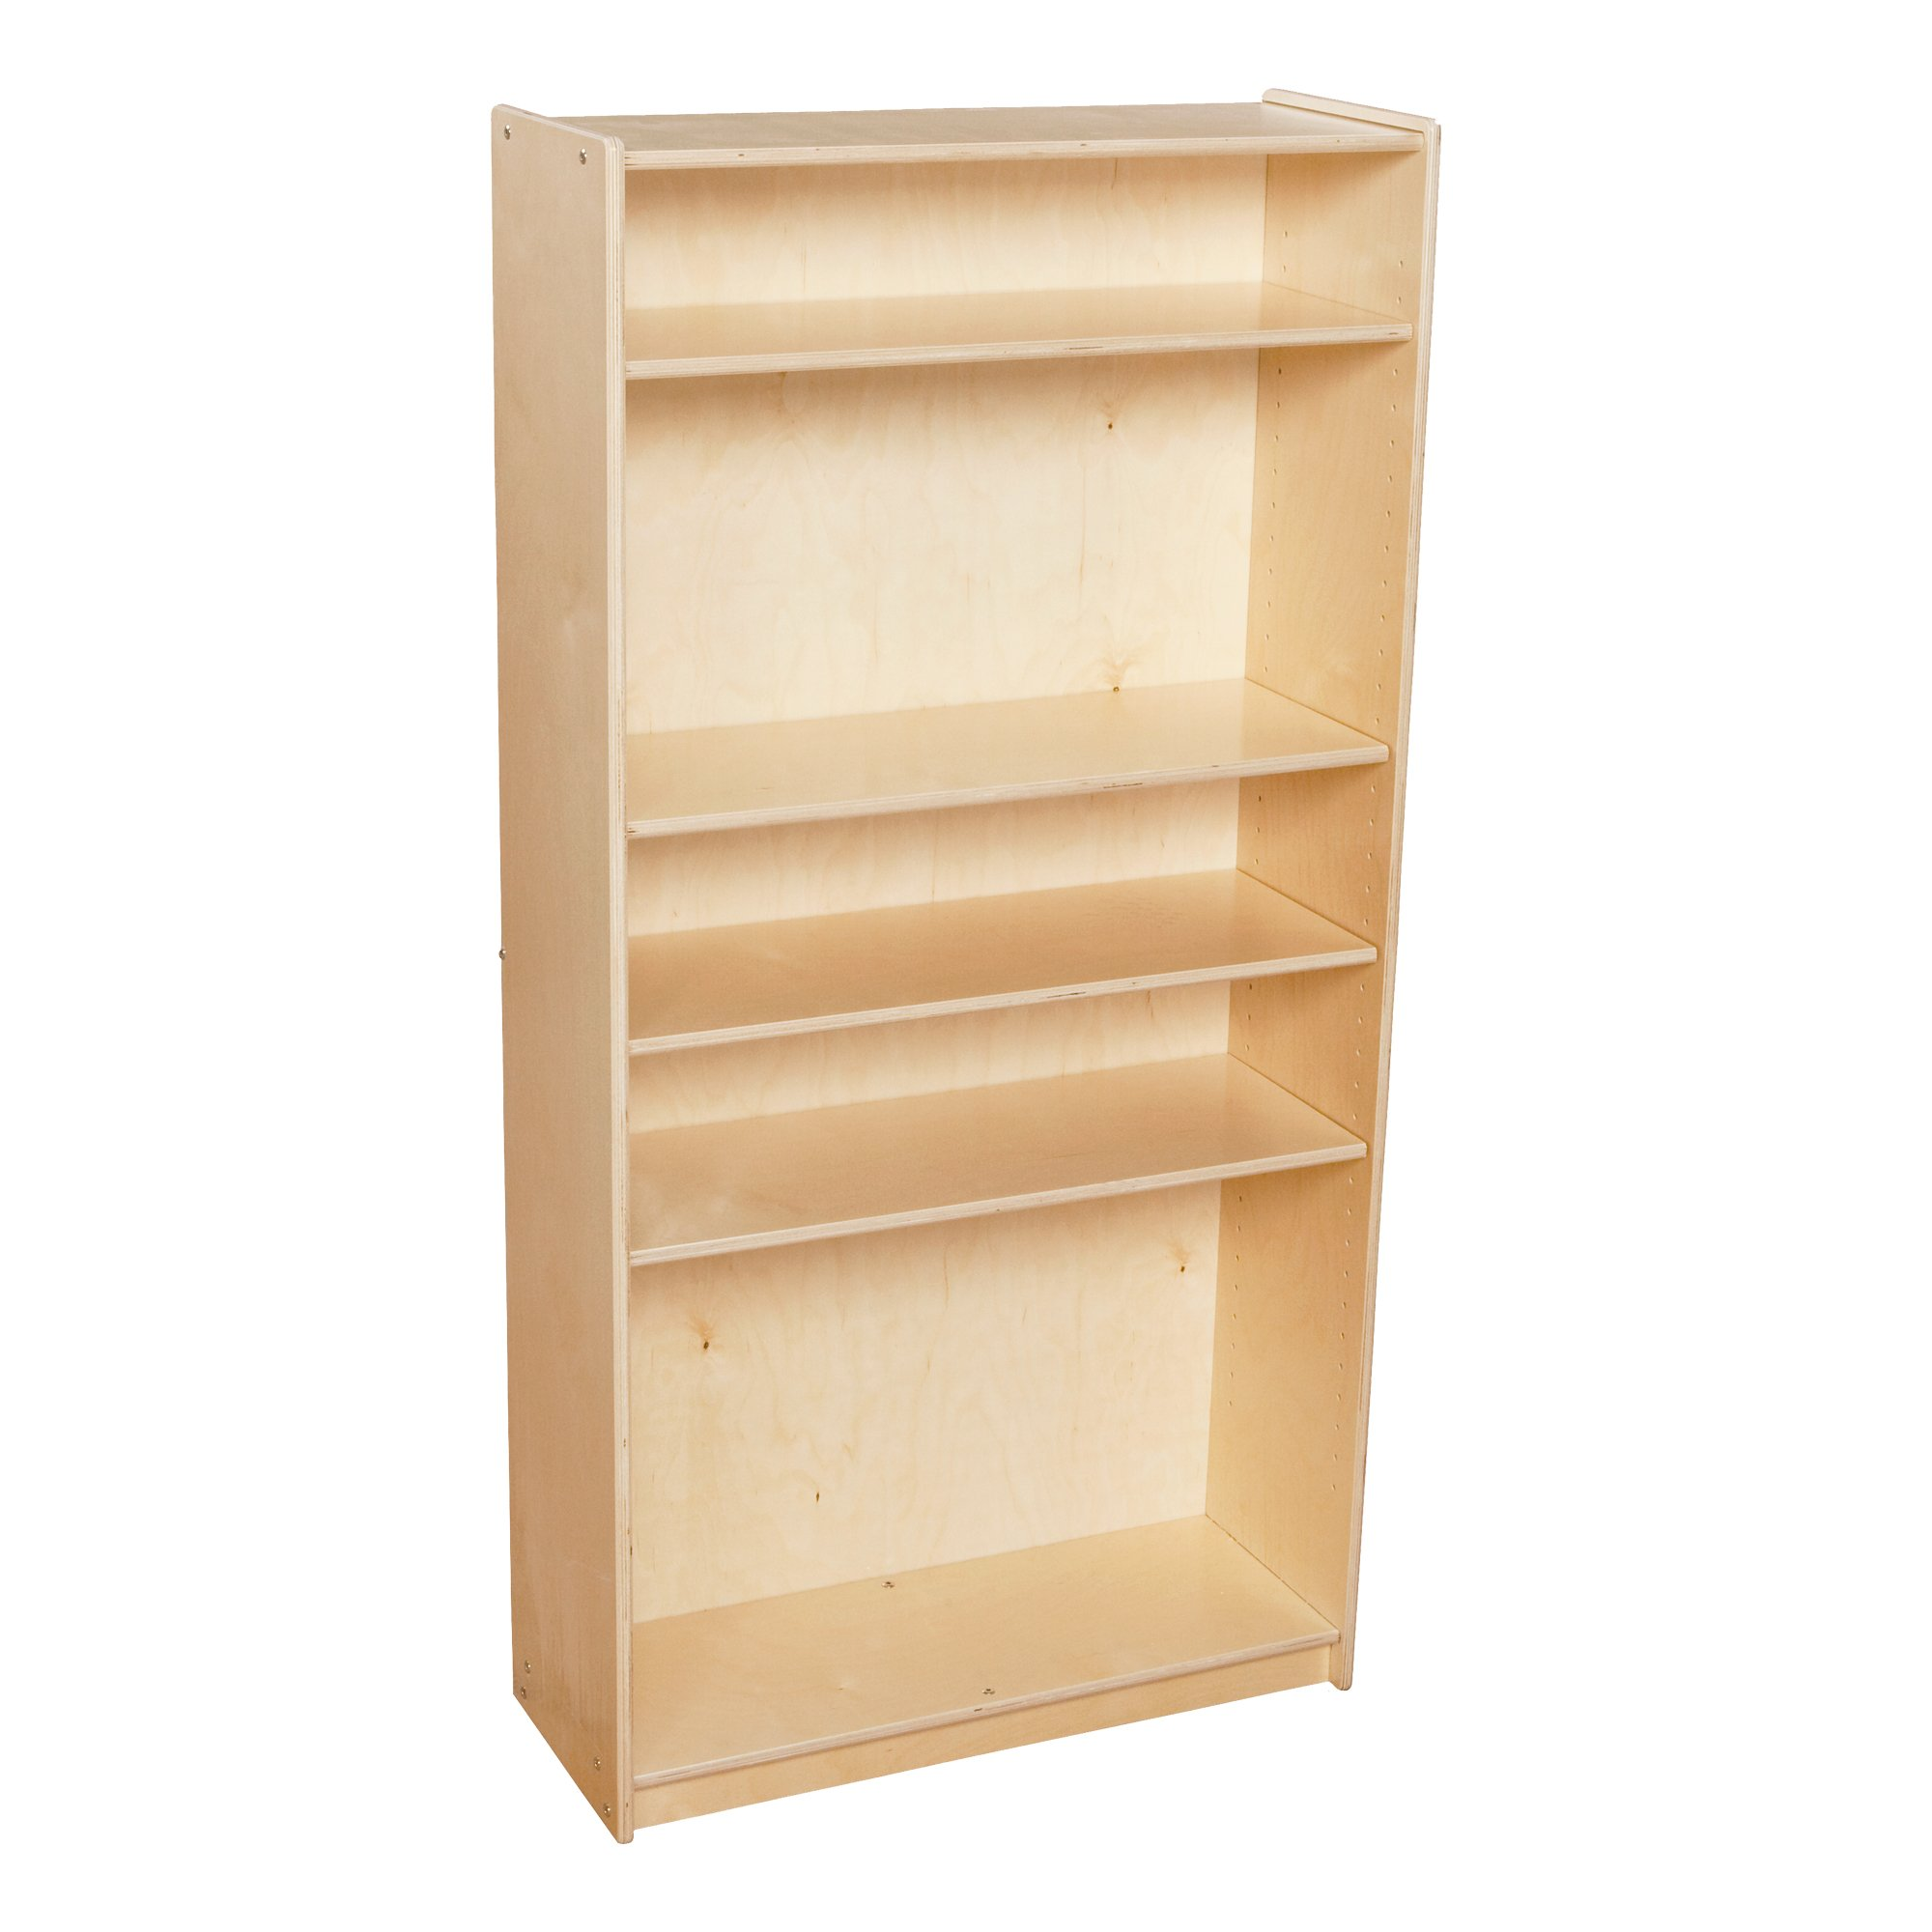 Sprogs SPG-2124A Wooden Bookcase with Five Shelves, 30'' W x 12'' D x 60'' H, 59 1/2'' Height, 12'' Wide, 30'' Length, Natural